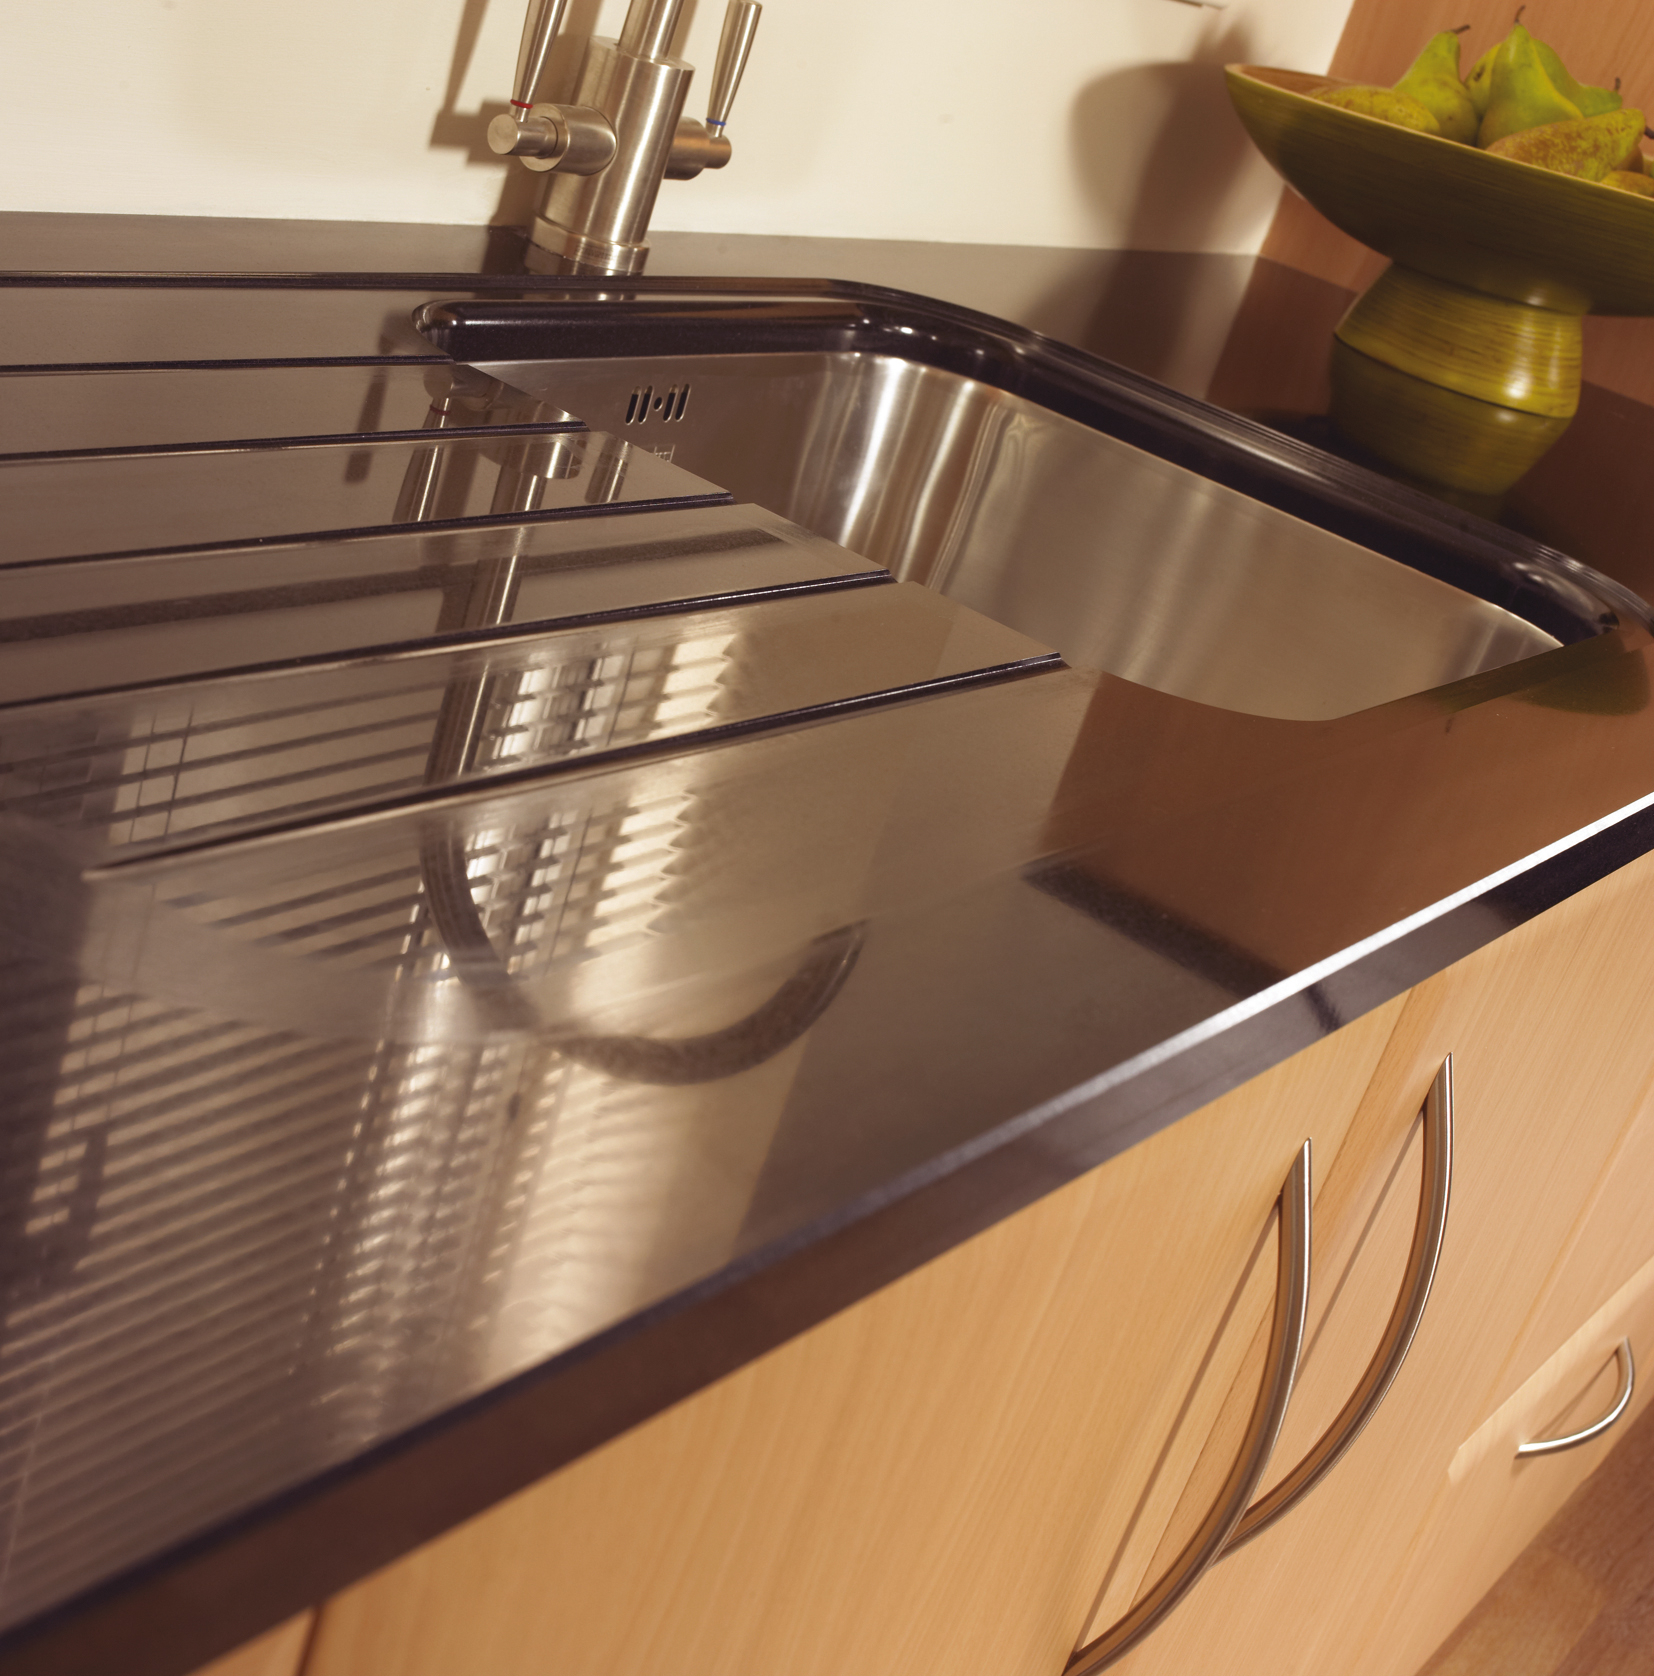 how to make a stainless steel sink